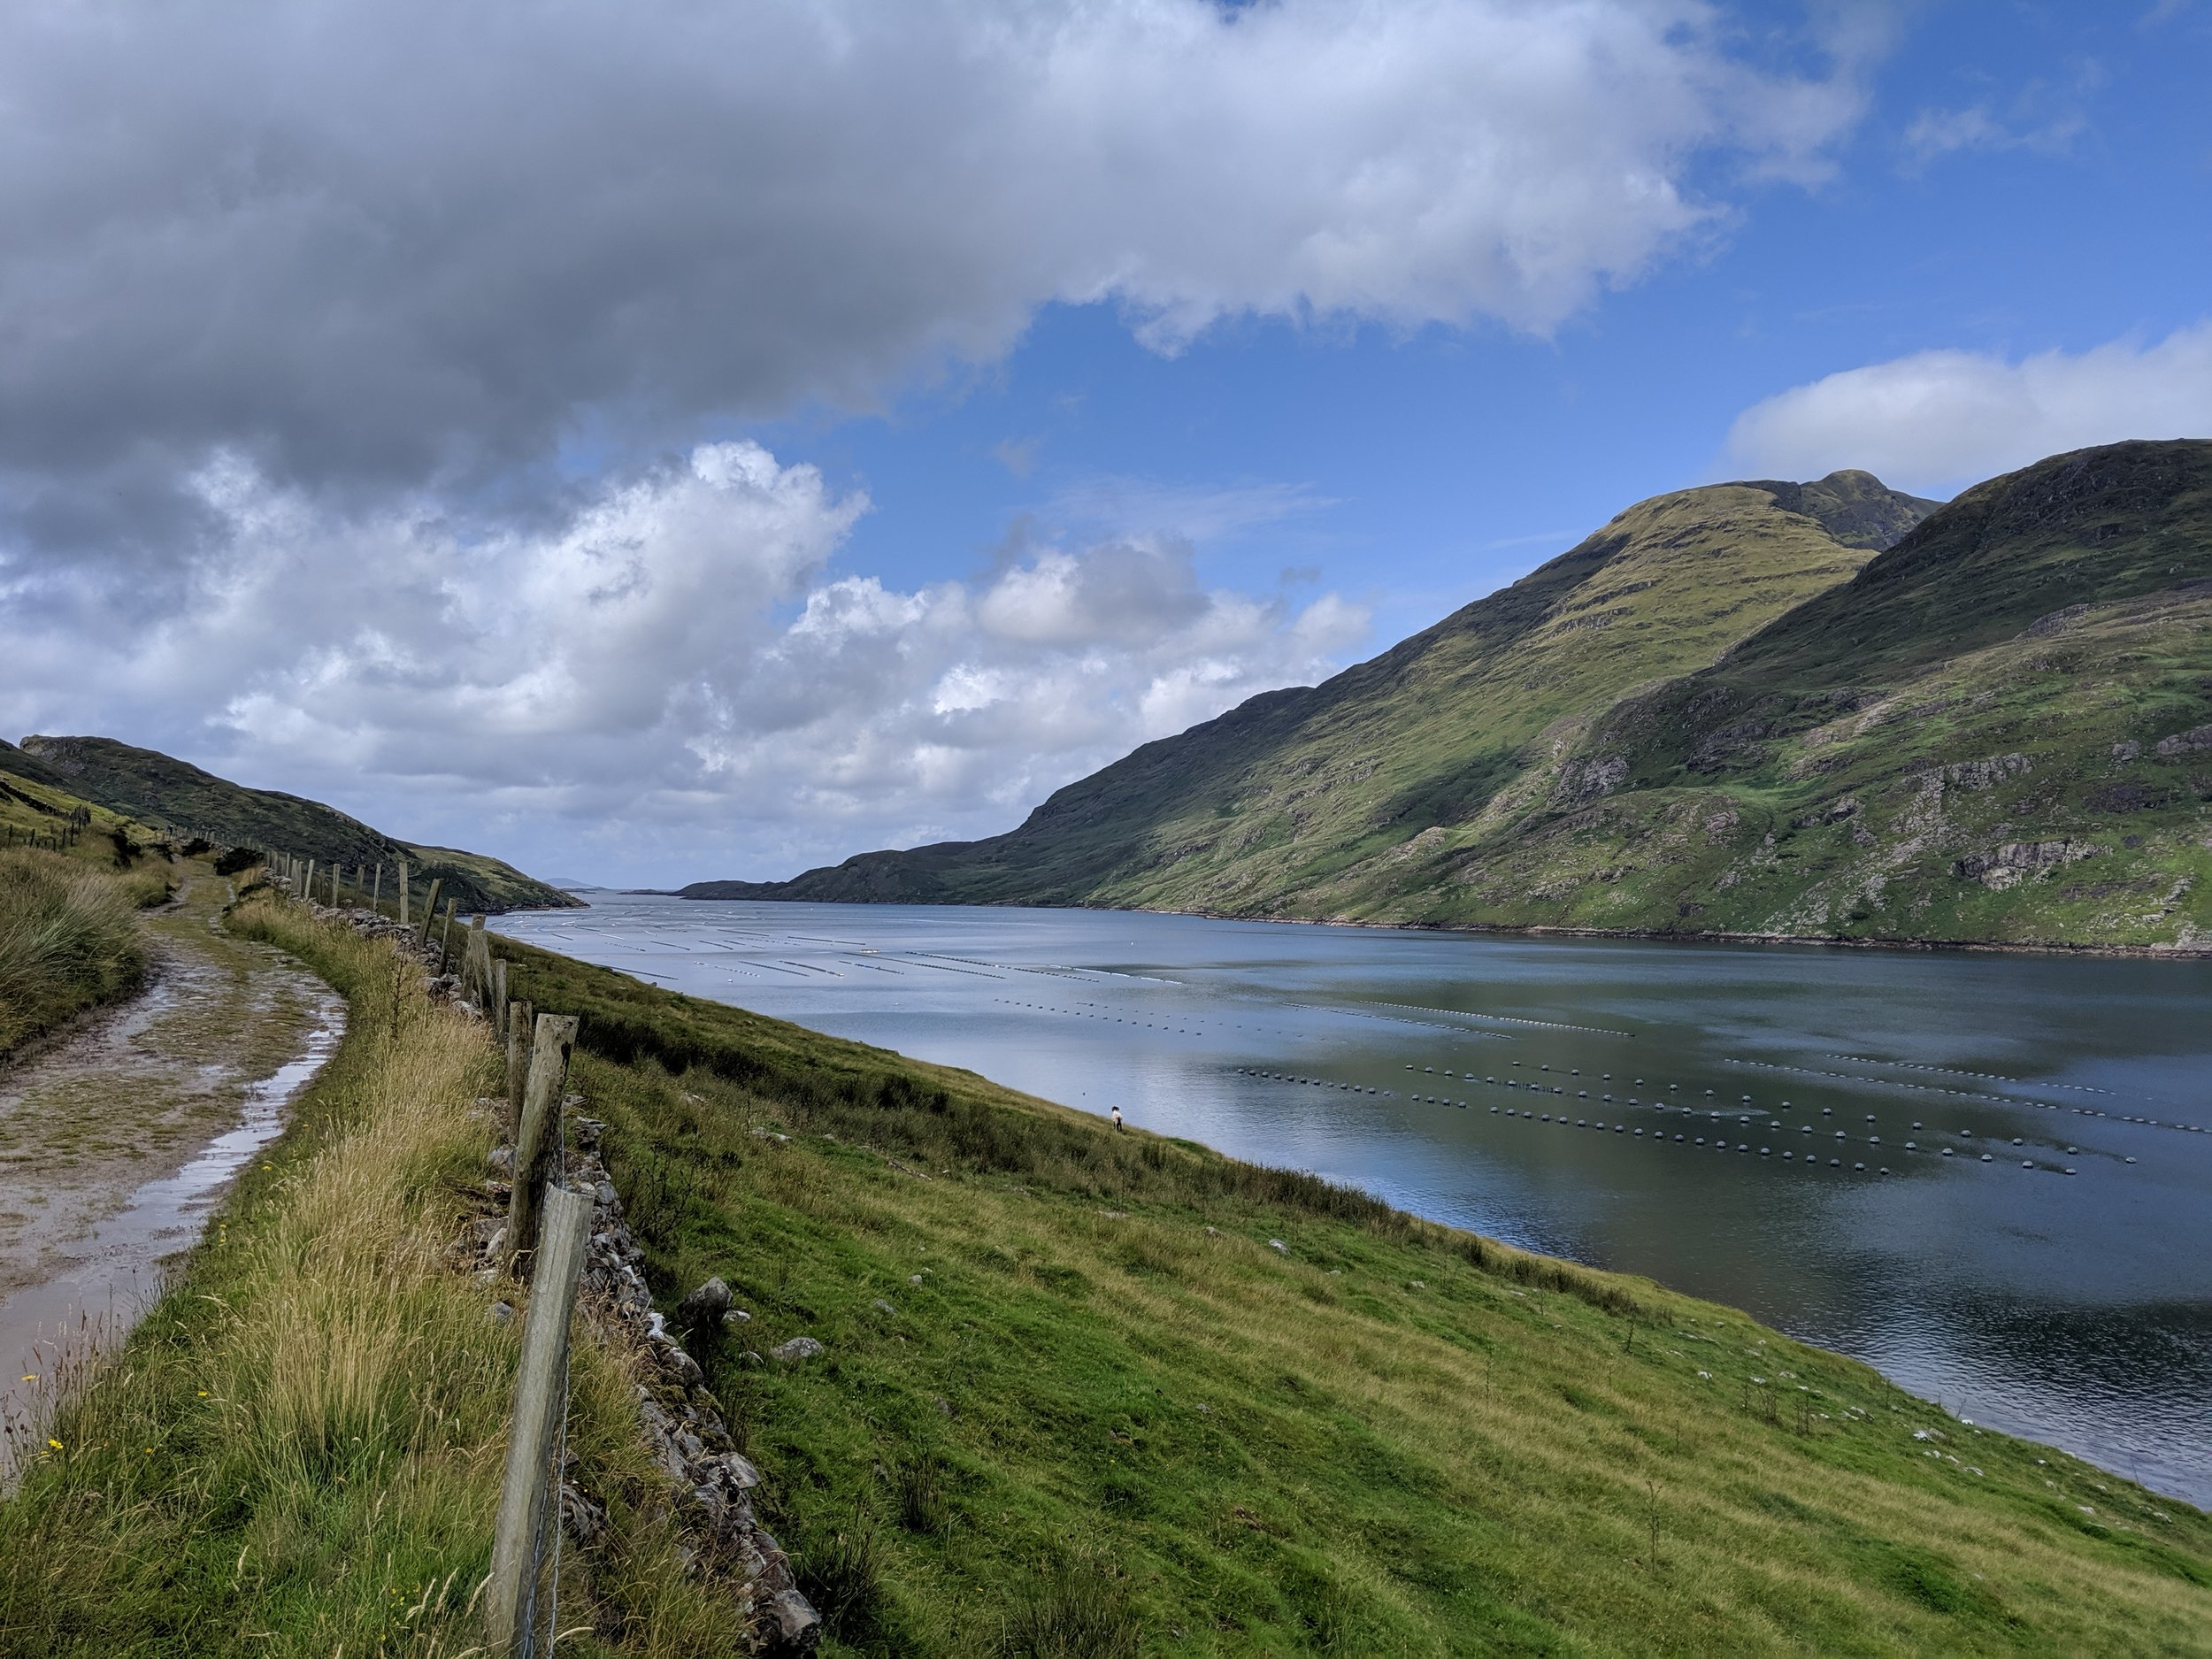 This photo was taken from the Famine Road looking westward down the Killary Fjord. During the famine of 1847 this road was used by starving Irish peasants as the made their way to the various ports along the coast where they boarded ships to take them to America or another country.  Floating in the fjord are buoys used for shellfish farming and harvesting.